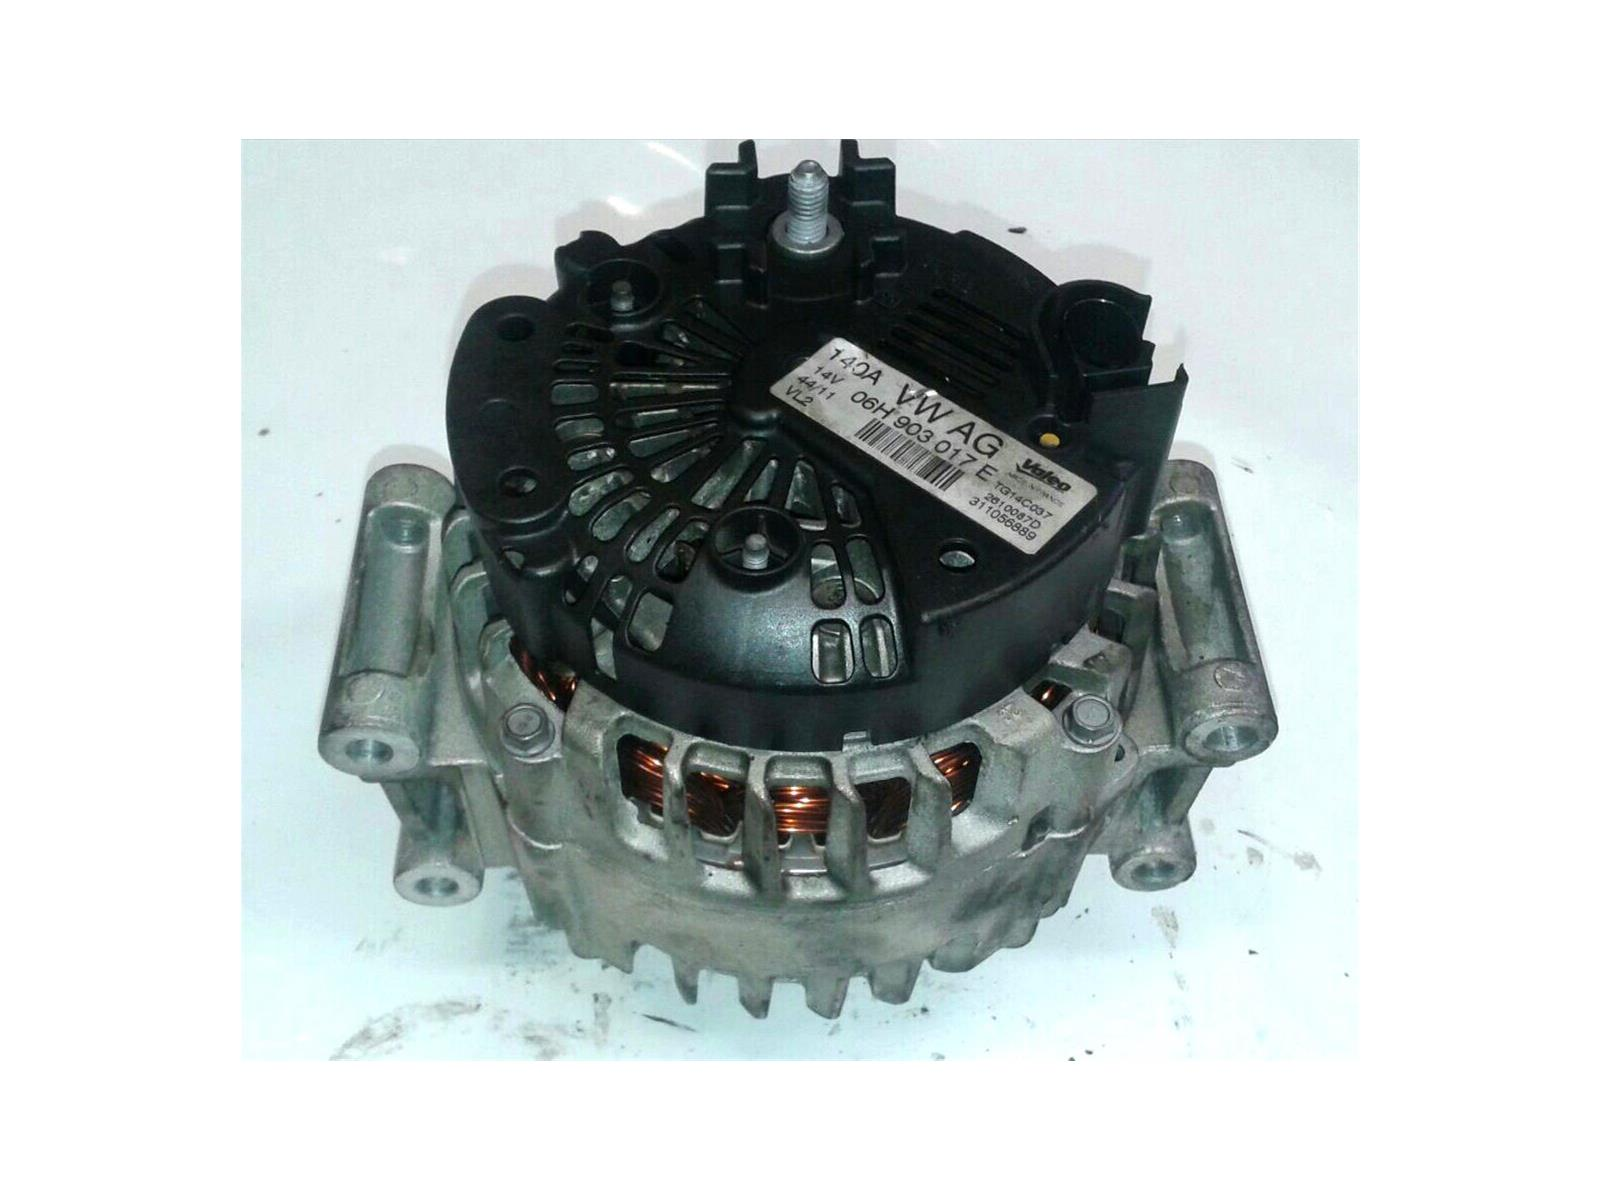 audi a3 2008 to 2013 alternator petrol manual for sale from rh motorhog co uk 2014 Audi A3 Audi A3 Manual PDF